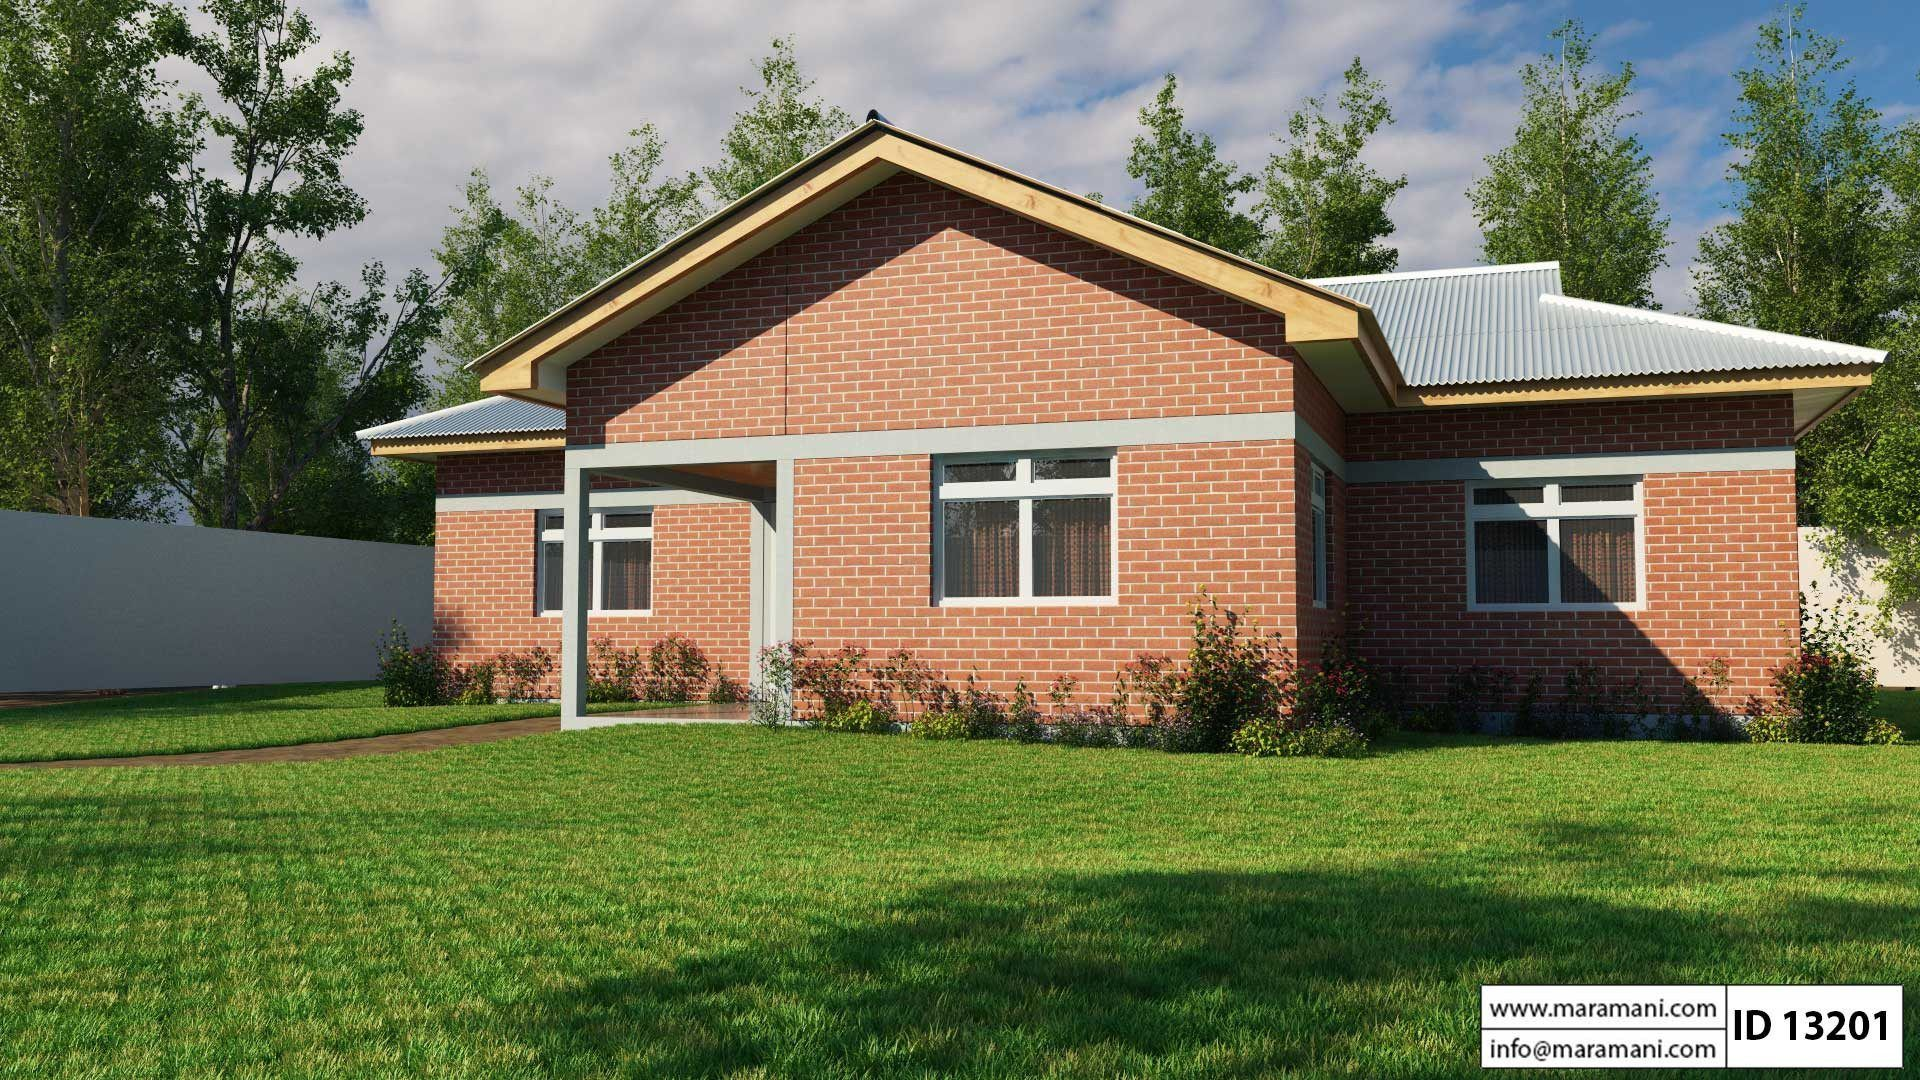 3 Bedroom House Plan Id 13201 My House Plans Brick House Designs Bedroom House Plans